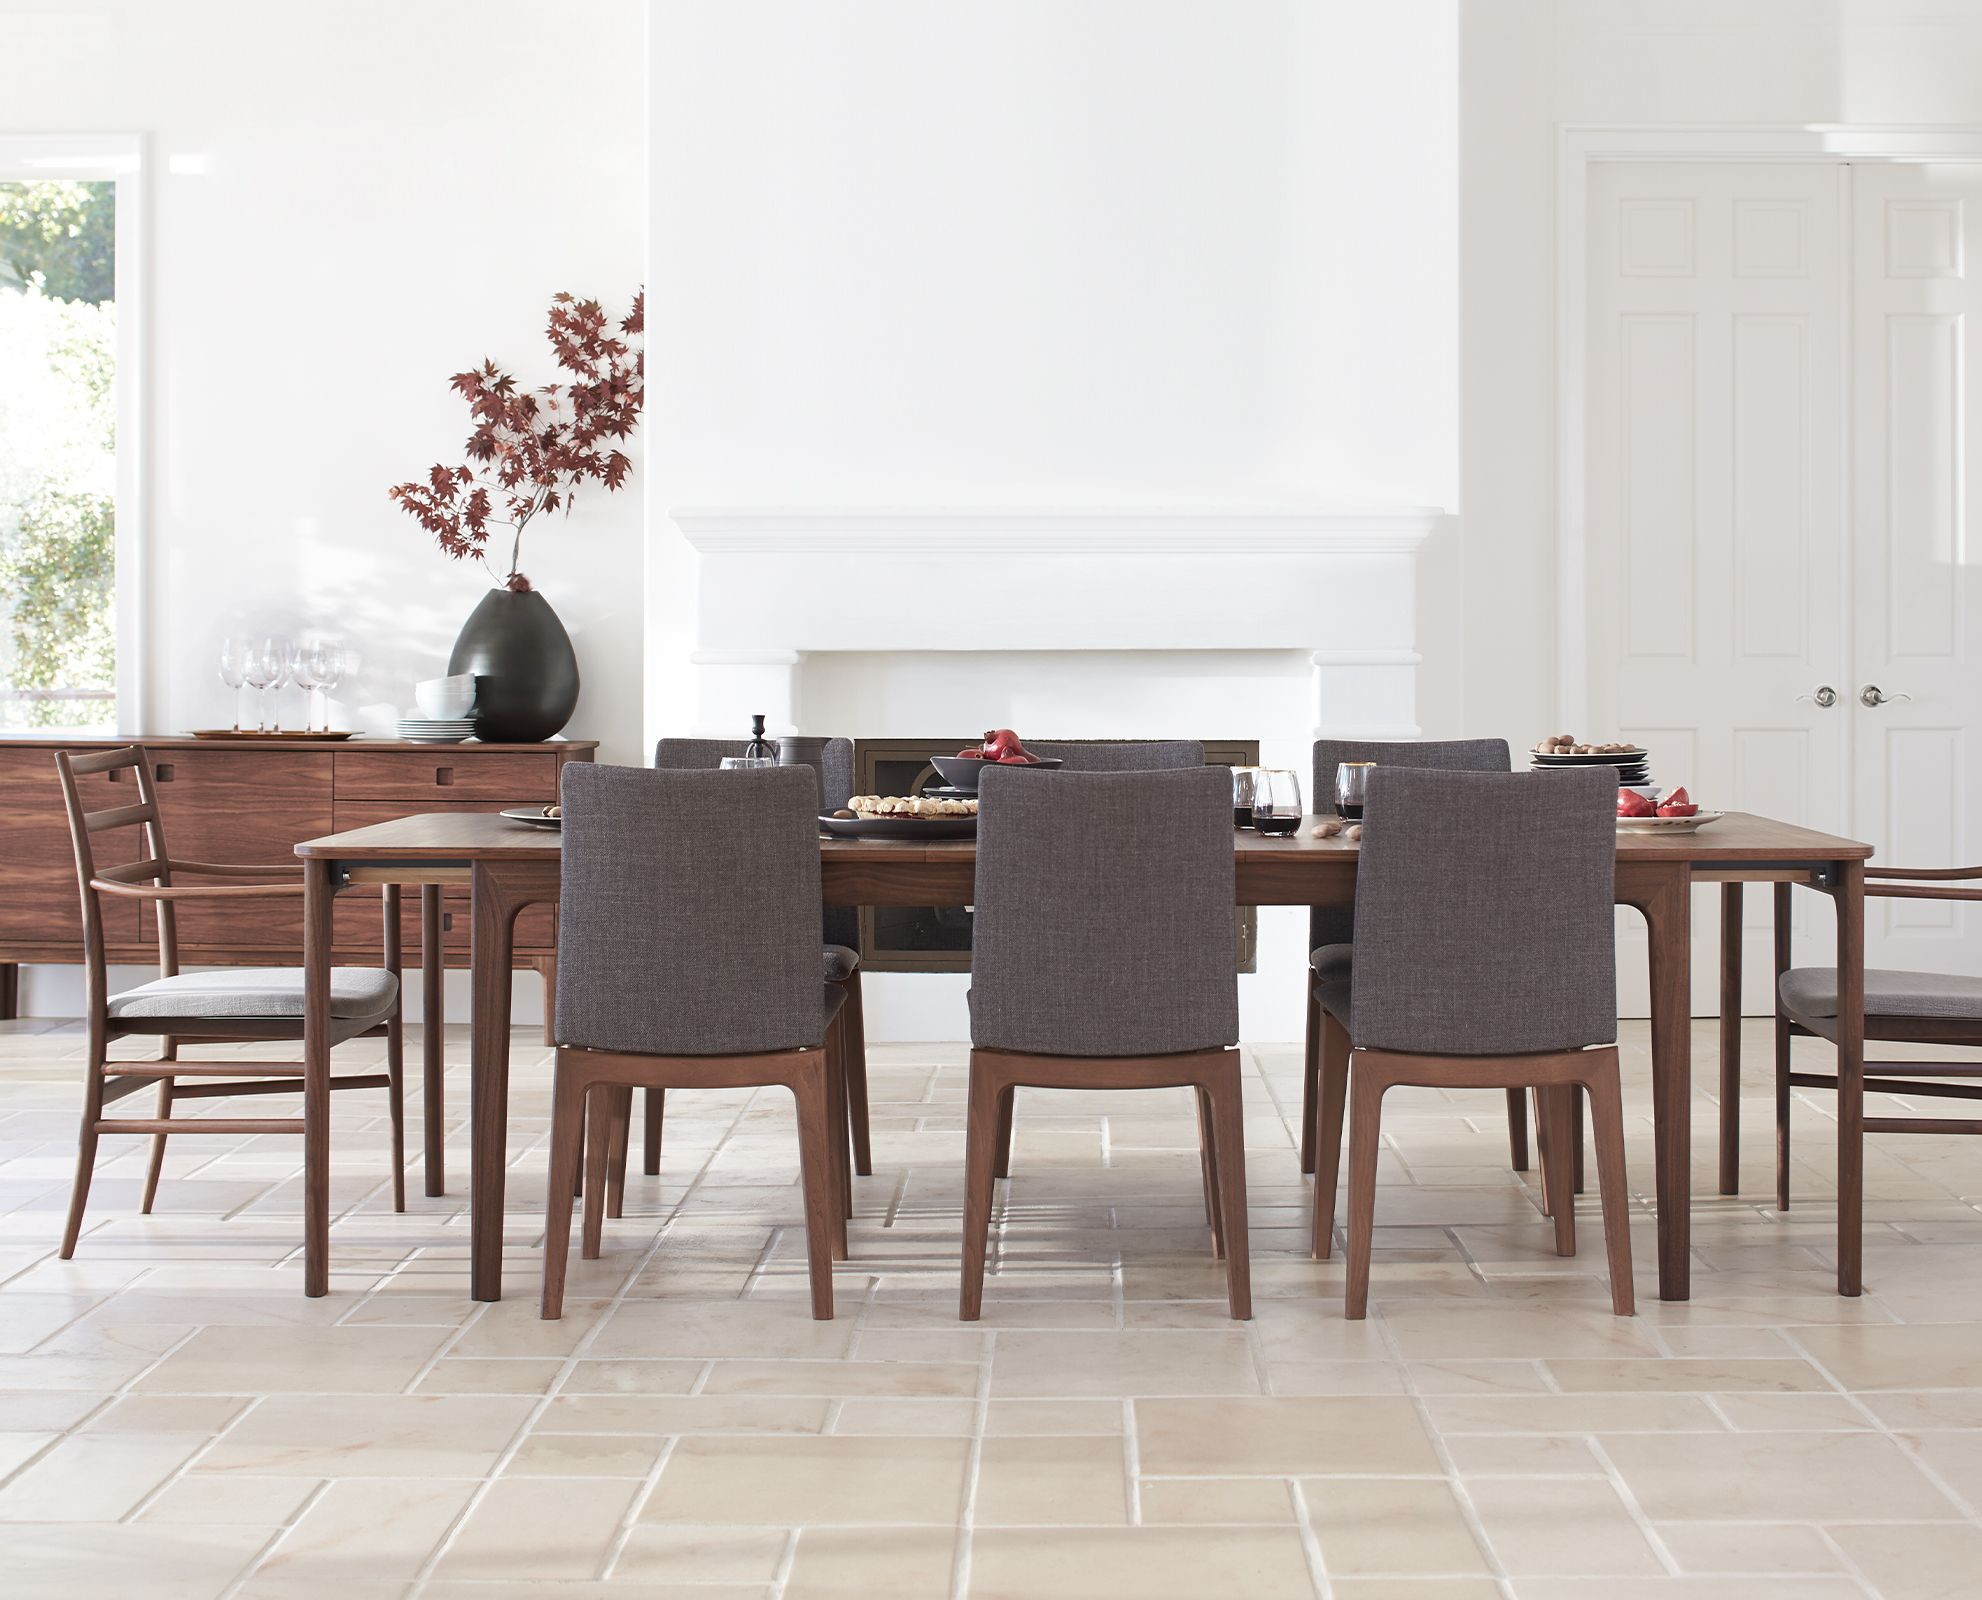 sundby dining chair by scandinavian design i like the chairs and